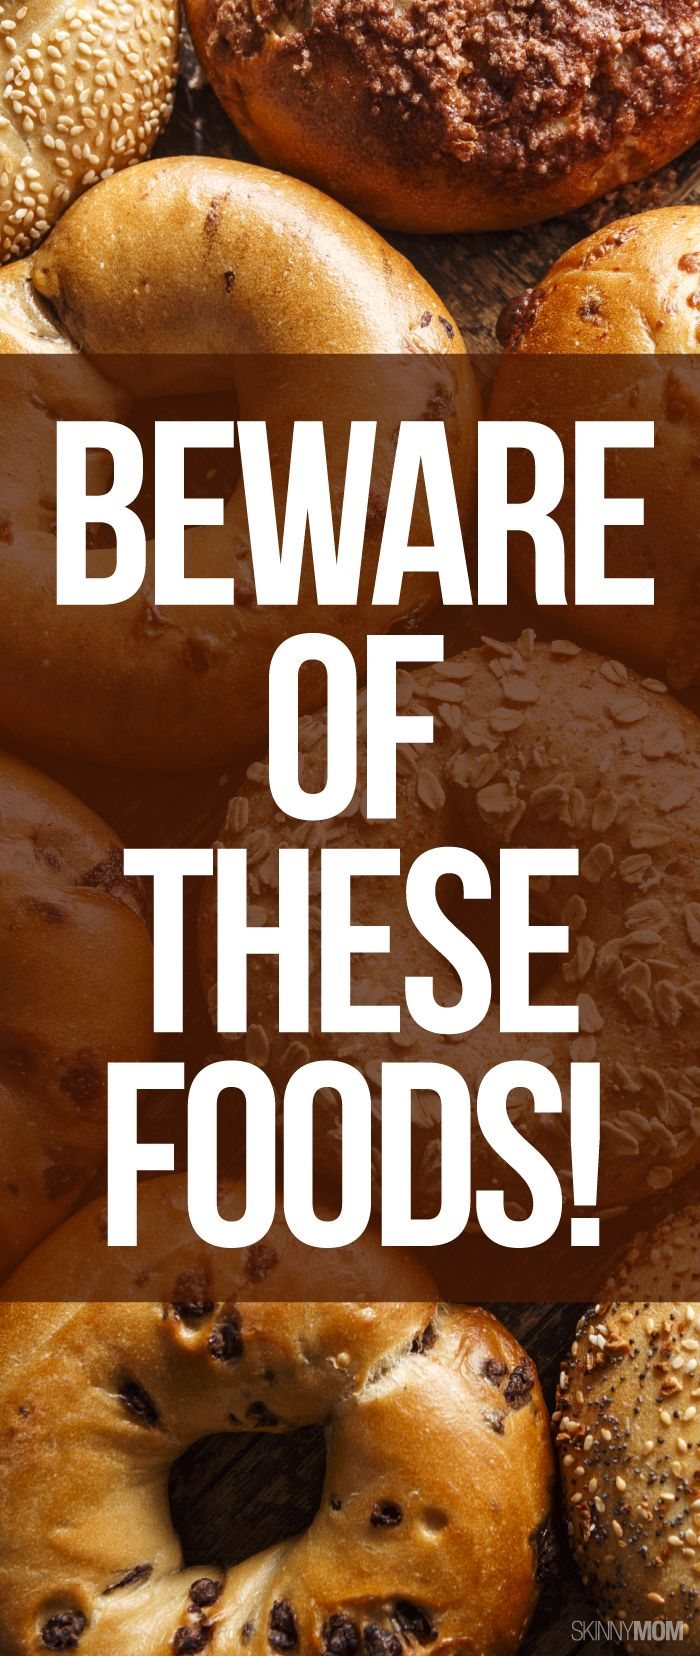 Stay away of these healthy foods!